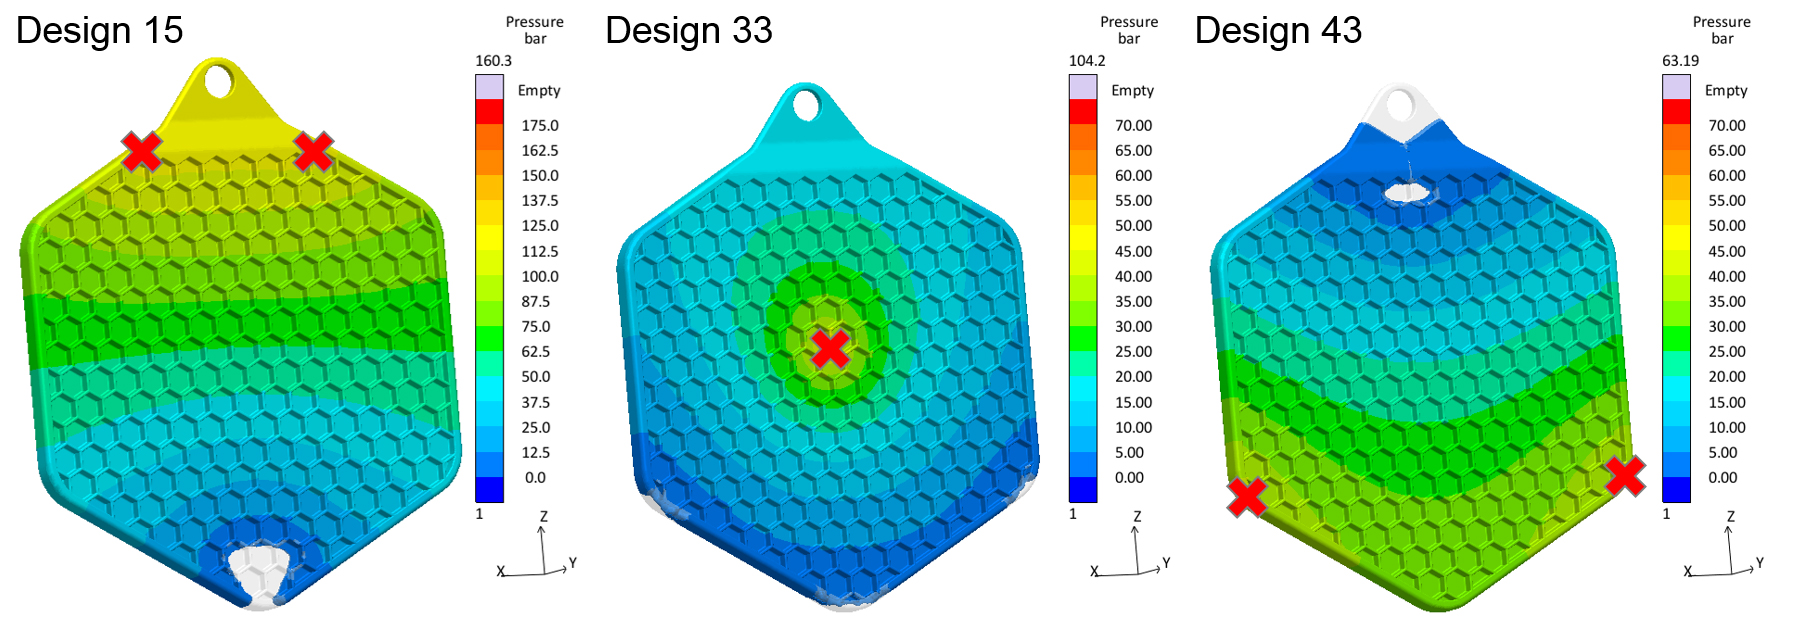 With the help of a virtual DoE different injection points (red crosses) are compared regarding injection pressure and air entrapments for an LSR pot cloth. While Design 15 and 43 have a high risk of undesired air bubbles, Design 33 combines a good filling behaviour with a low pressure demand. (Source: Sigma)